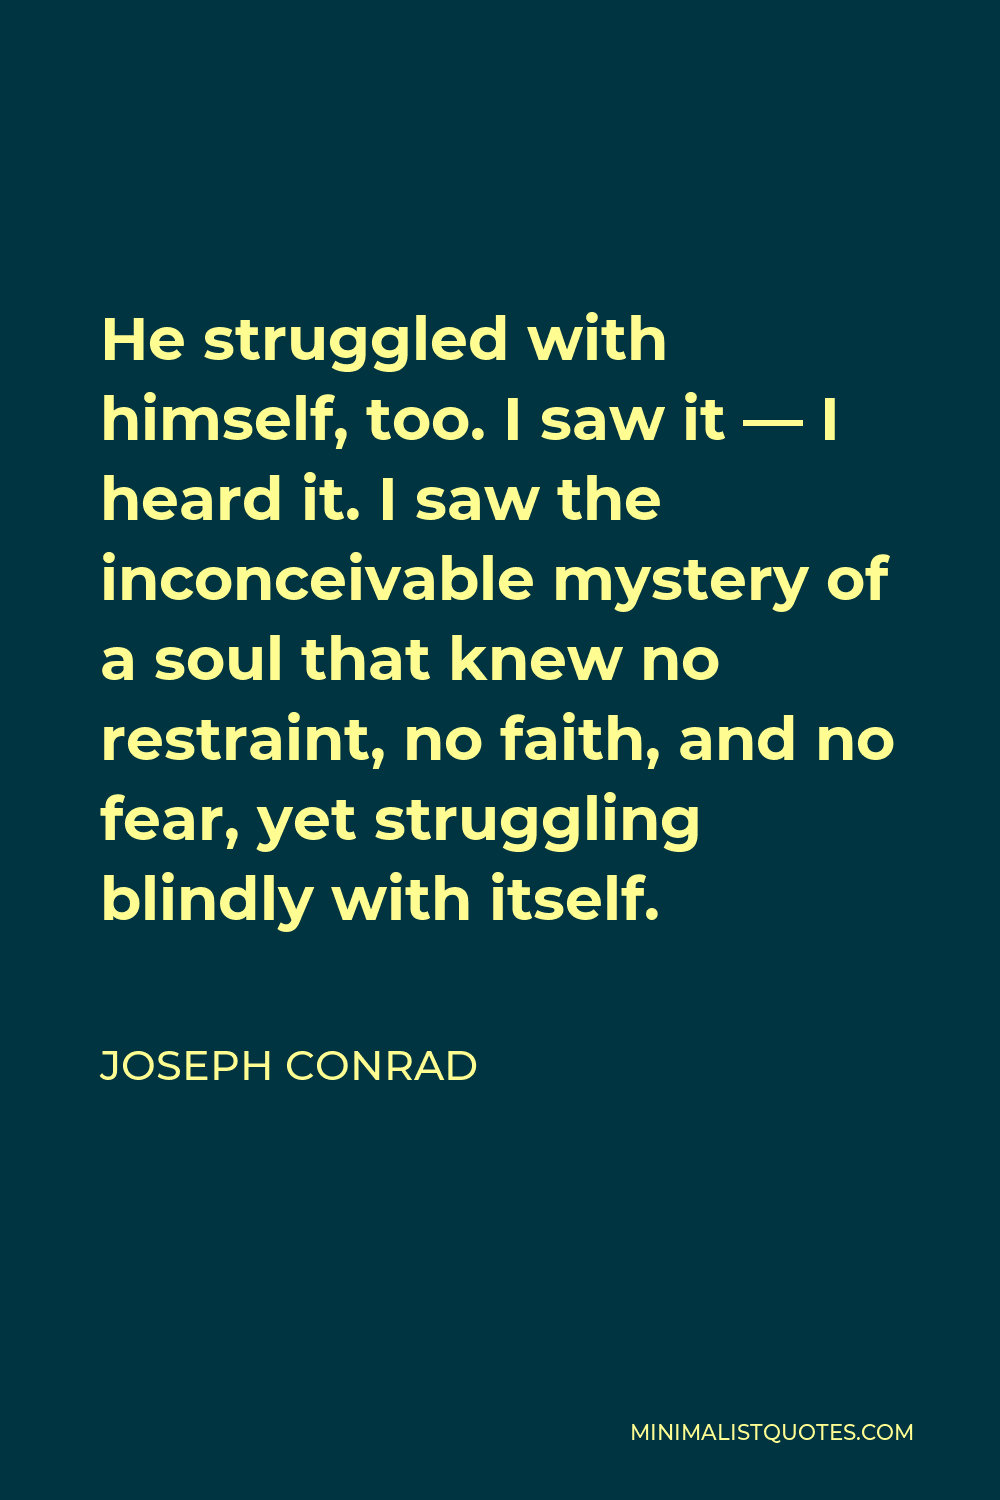 Joseph Conrad Quote - He struggled with himself, too. I saw it — I heard it. I saw the inconceivable mystery of a soul that knew no restraint, no faith, and no fear, yet struggling blindly with itself.